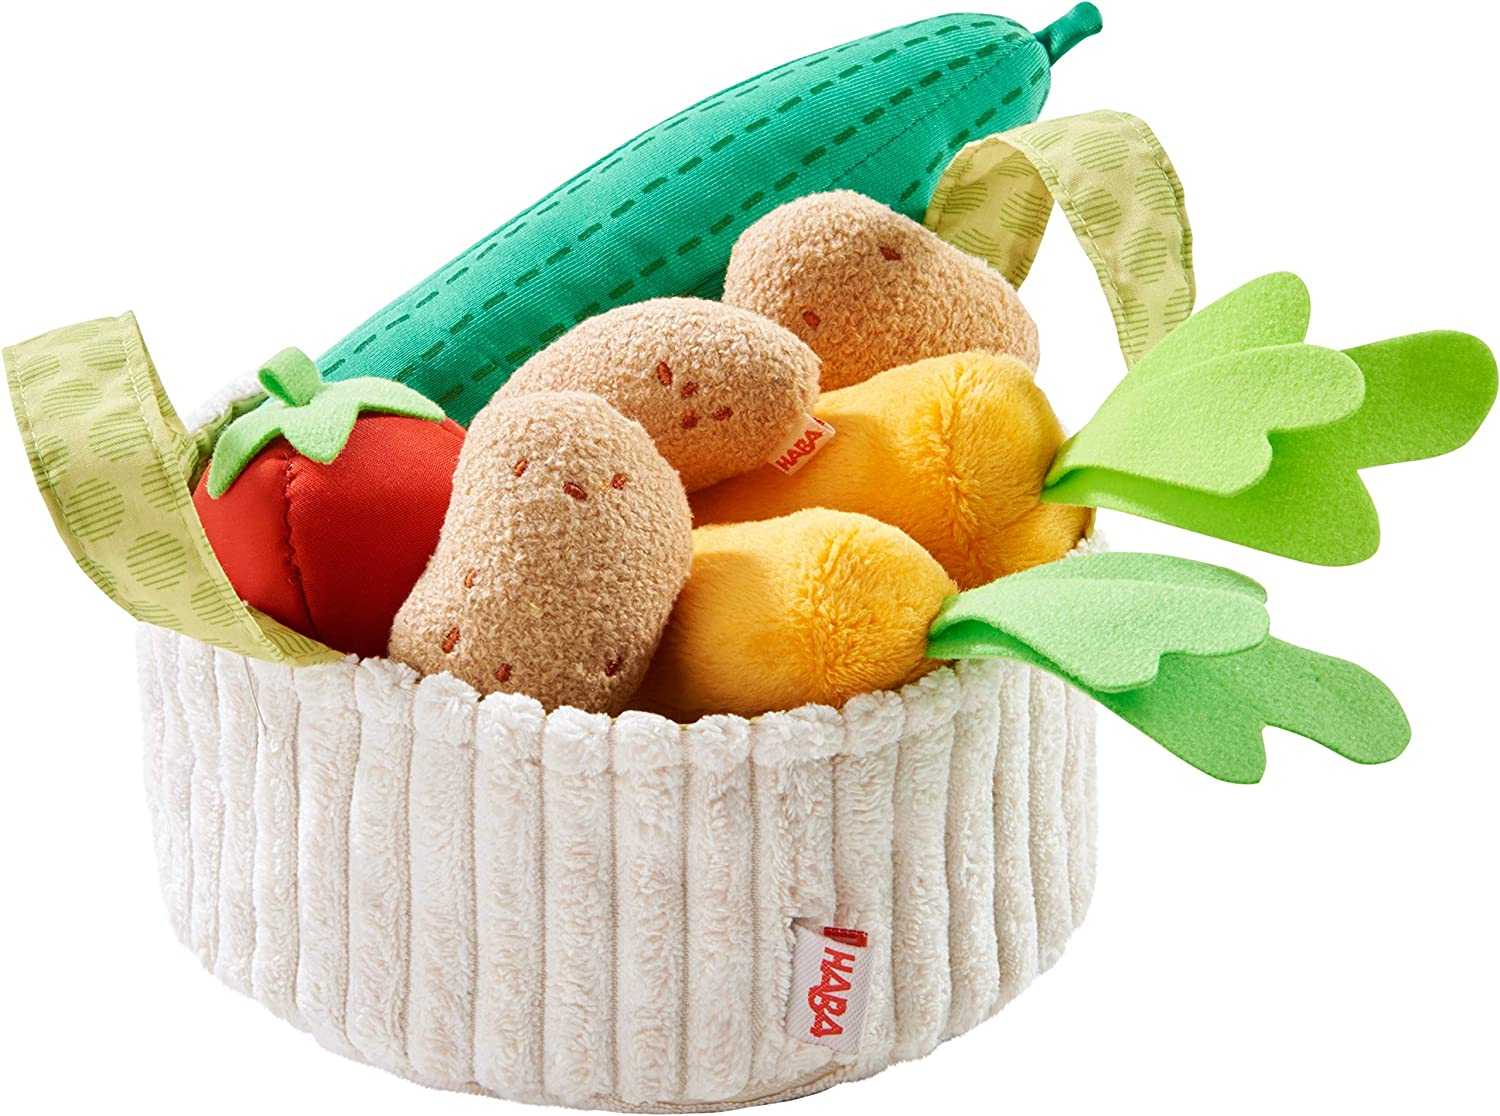 HABA 304230 Vegetable Basket for Shopping Shop and Children's Kitchen, Basket with Cucumber, Tomato, Carrots and Potatoes Made of Fabric, Toys from 3 Years